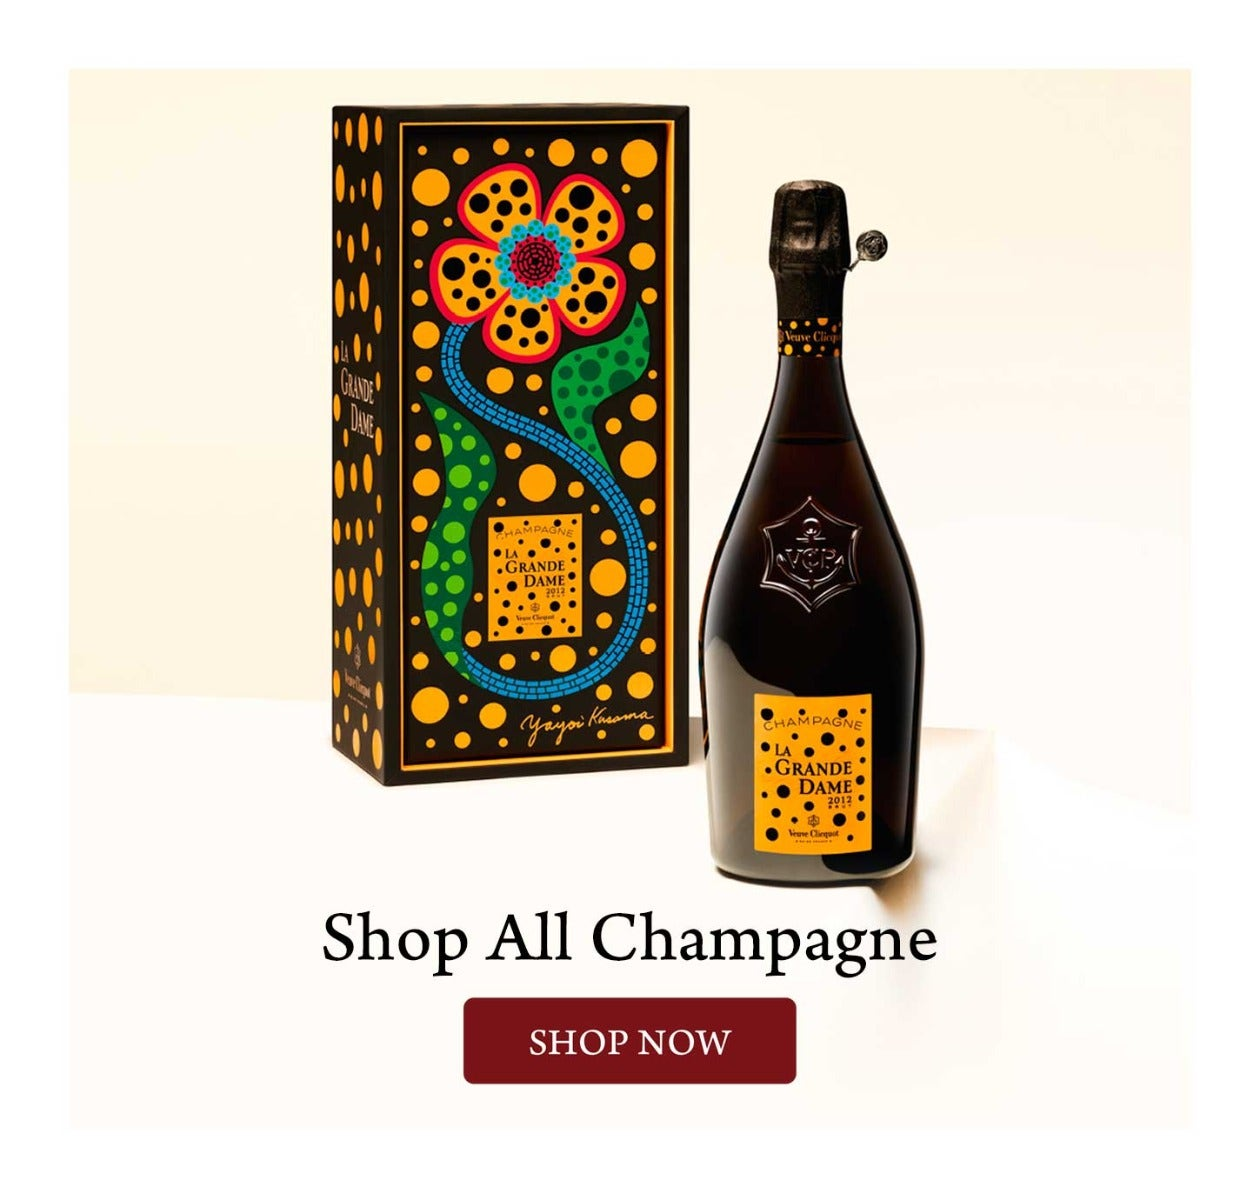 Shop for Champagne